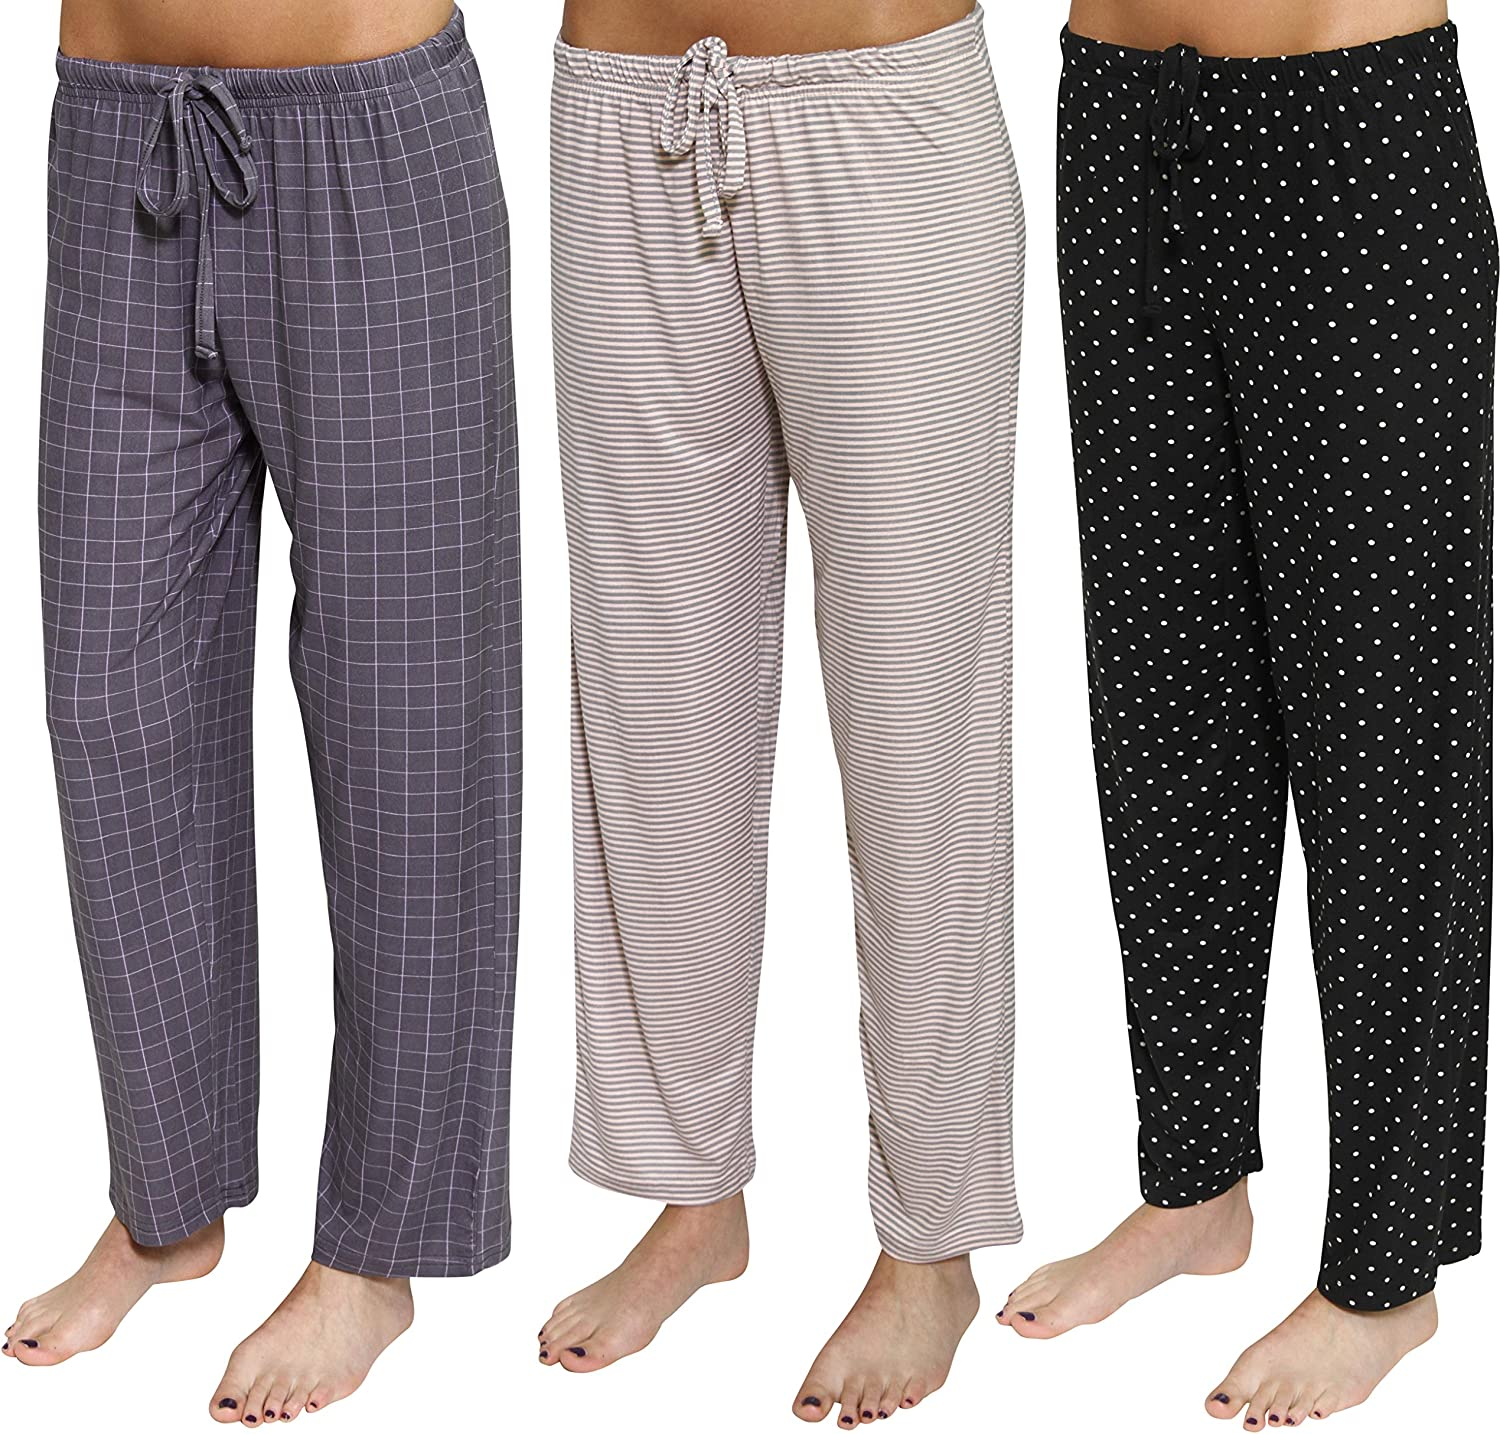 Real Essentials 3 Pack Women/'s Ultra-Soft Fleece Comfy Stretch Pajama//Lounge Pants Elegant Sleepwear